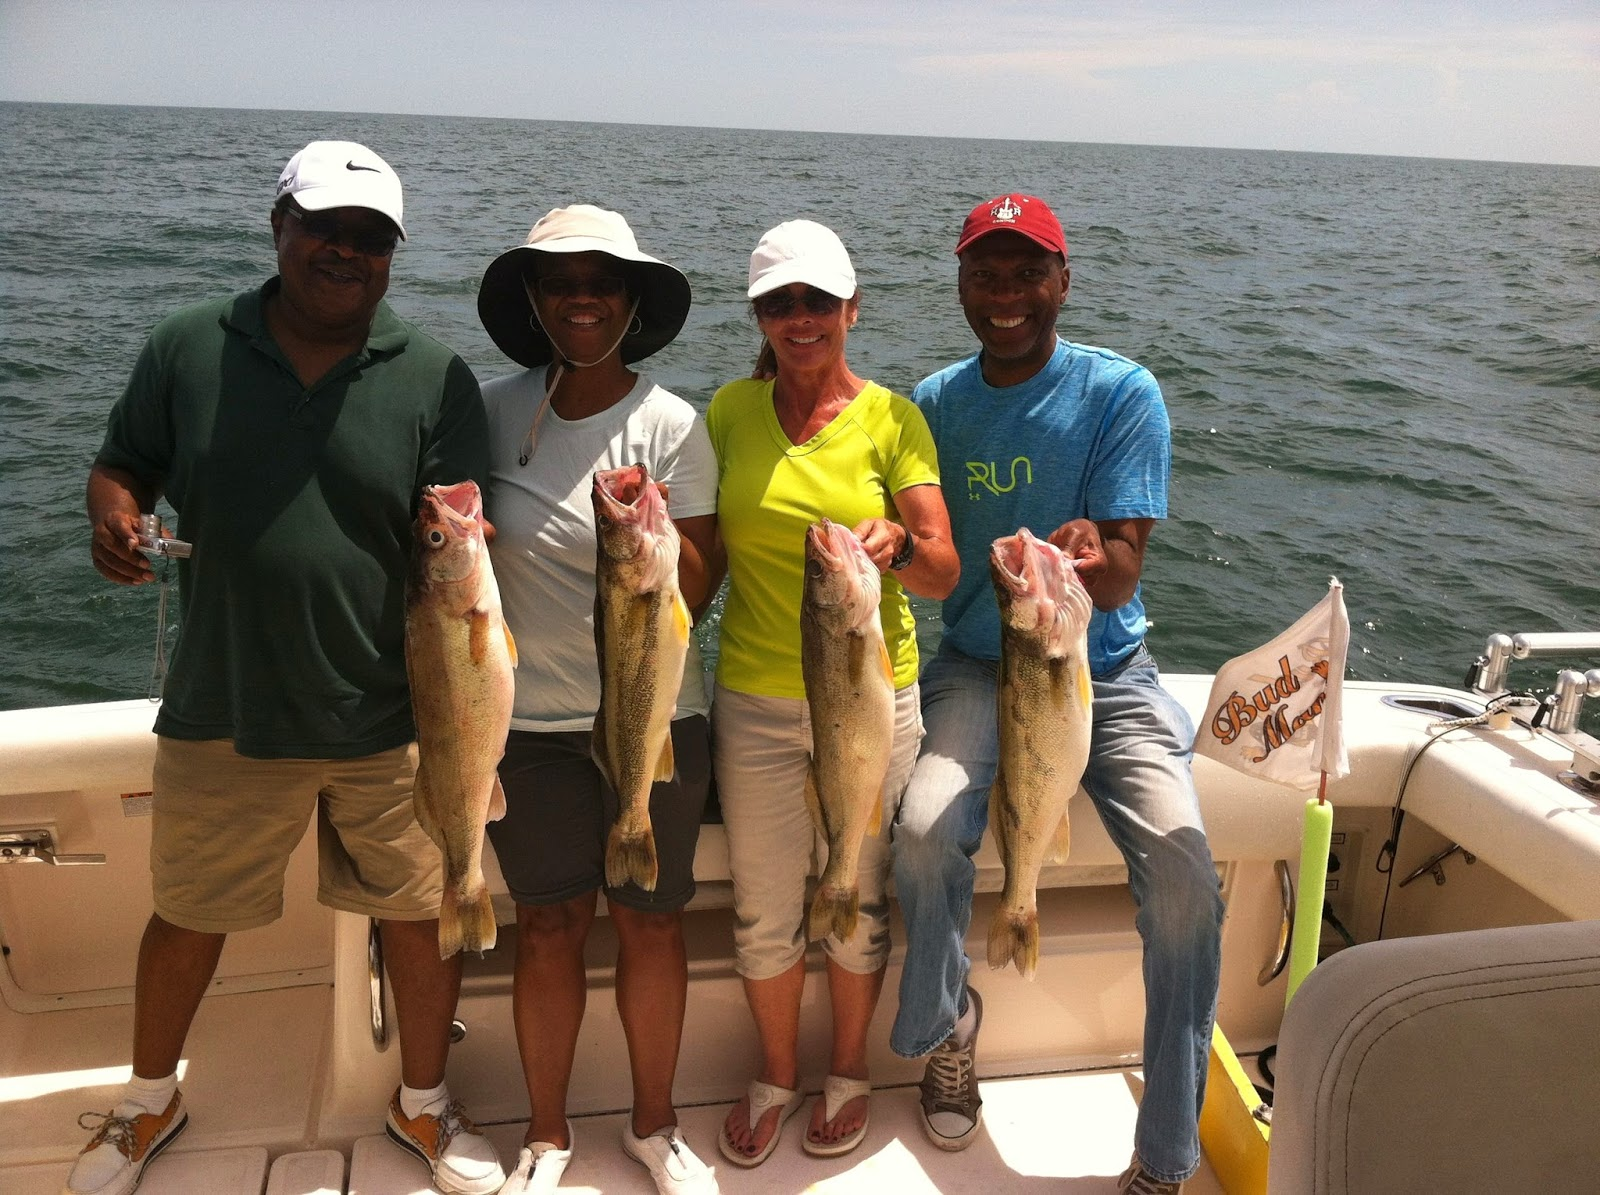 Lake erie walleye fishing reports east of pelee island 6 29 for Island current fishing report